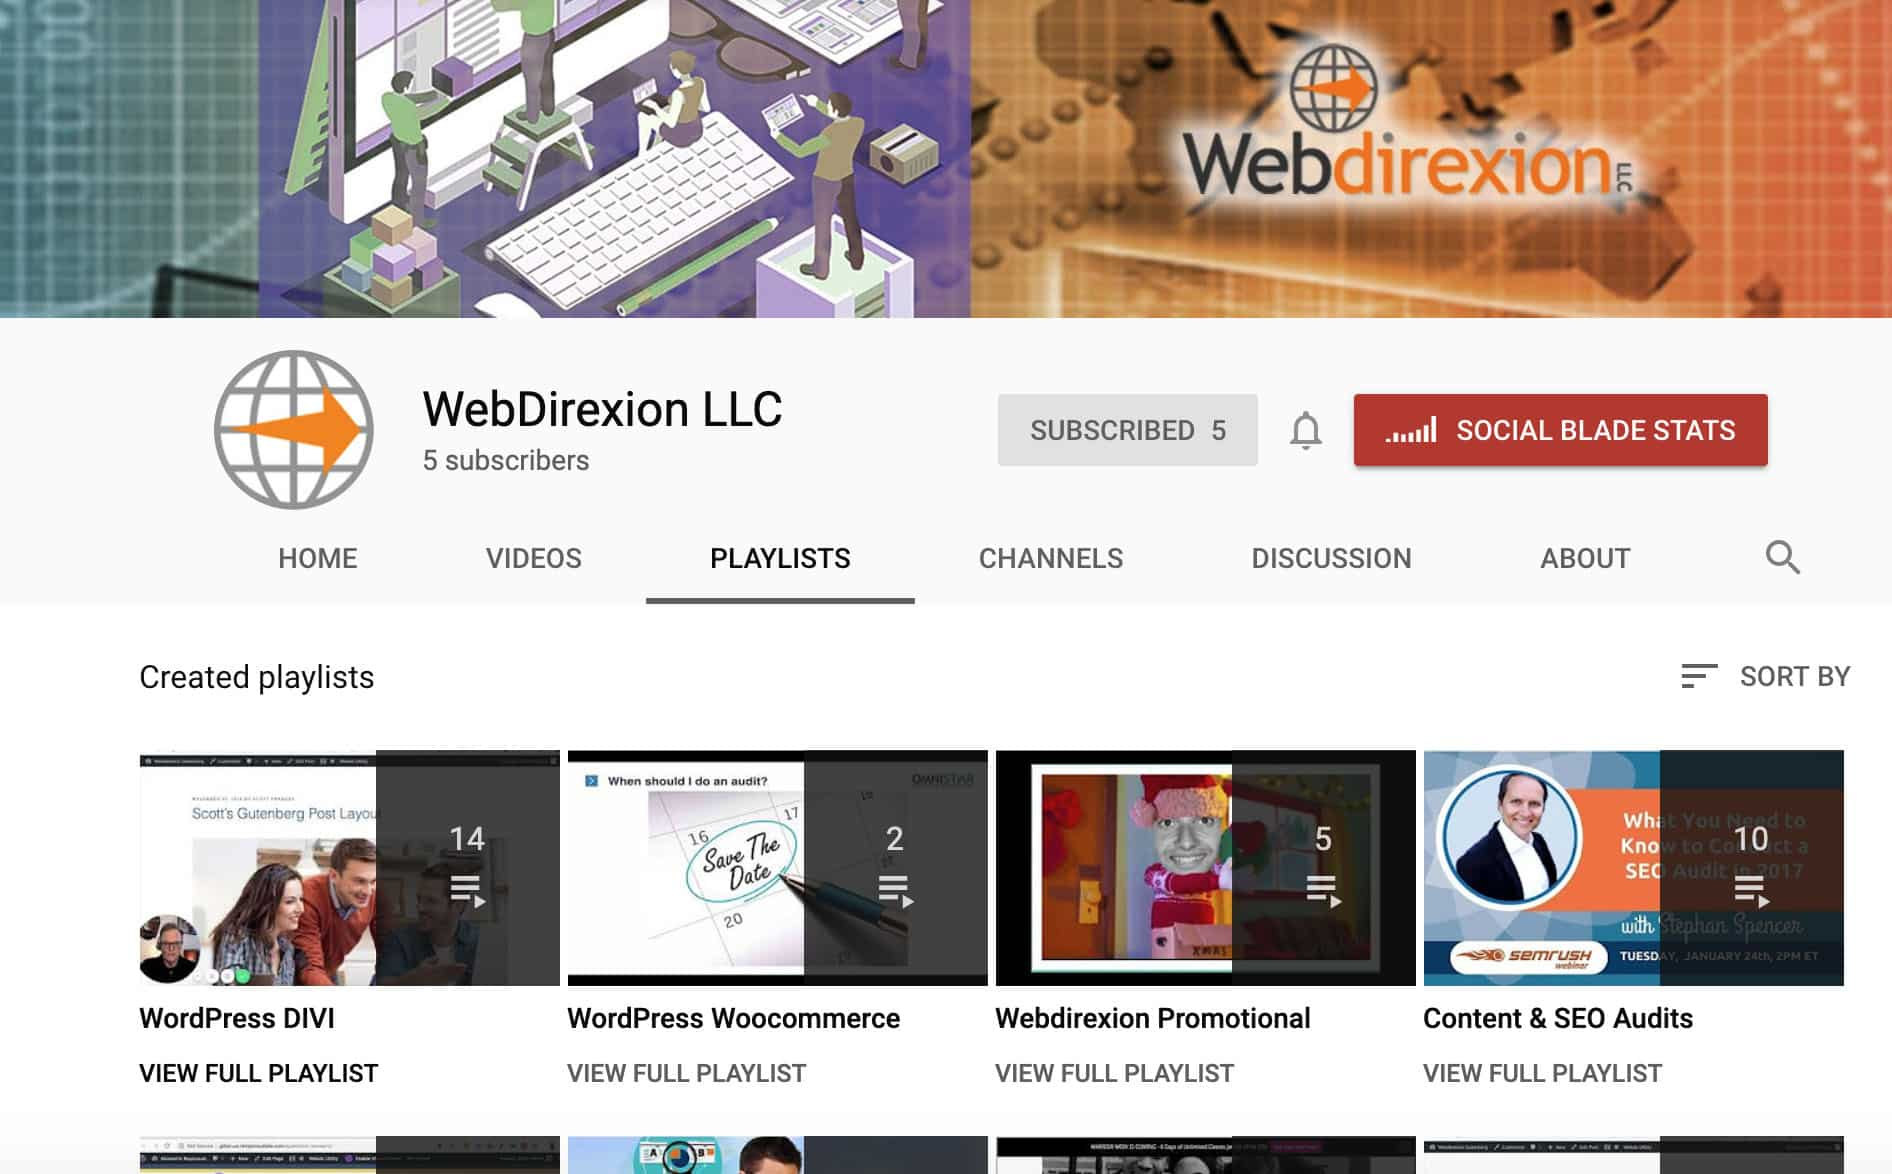 Webdirexion Content Marketing YouTube Channel